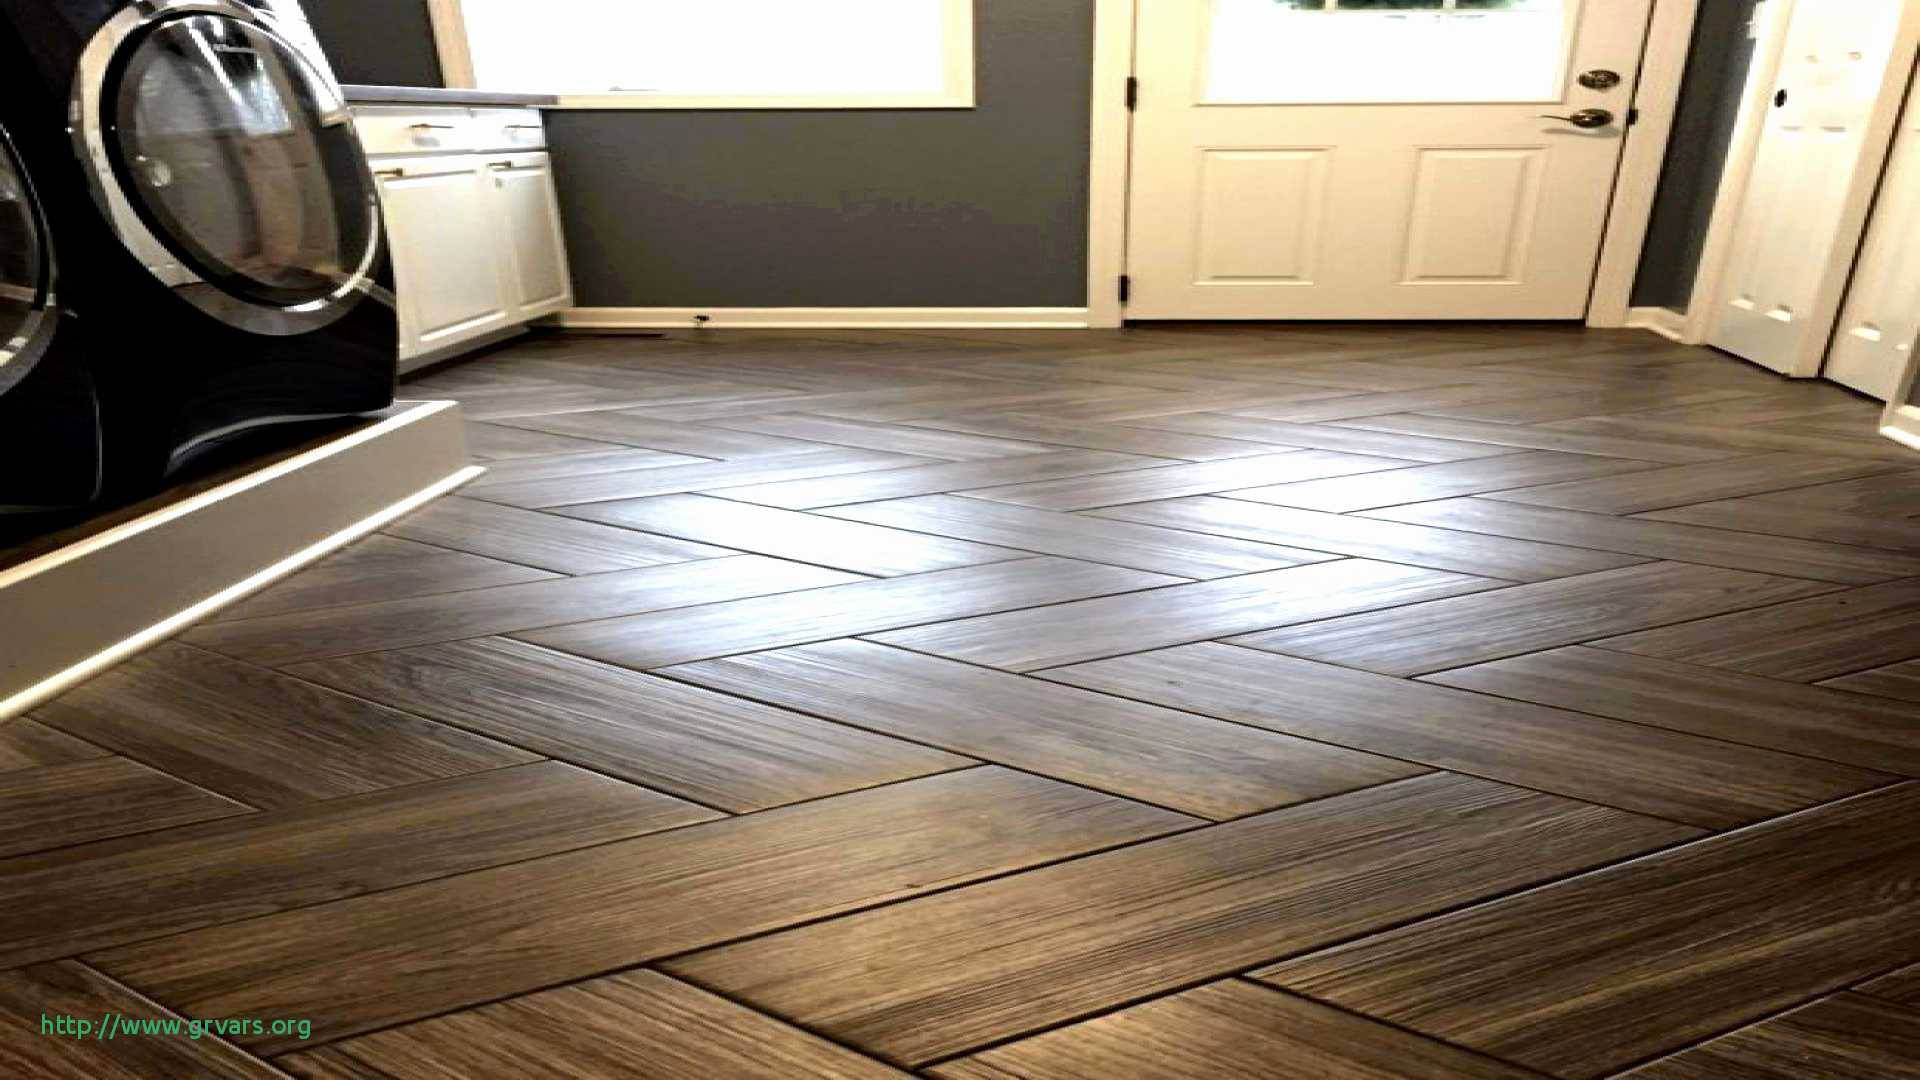 hardwood floor cleaner pet safe of 18 meilleur de linoleum floor cleaner machine ideas blog pertaining to kitchen floor tiles home depot elegant s media cache ak0 pinimg 736x 43 0d 97 best